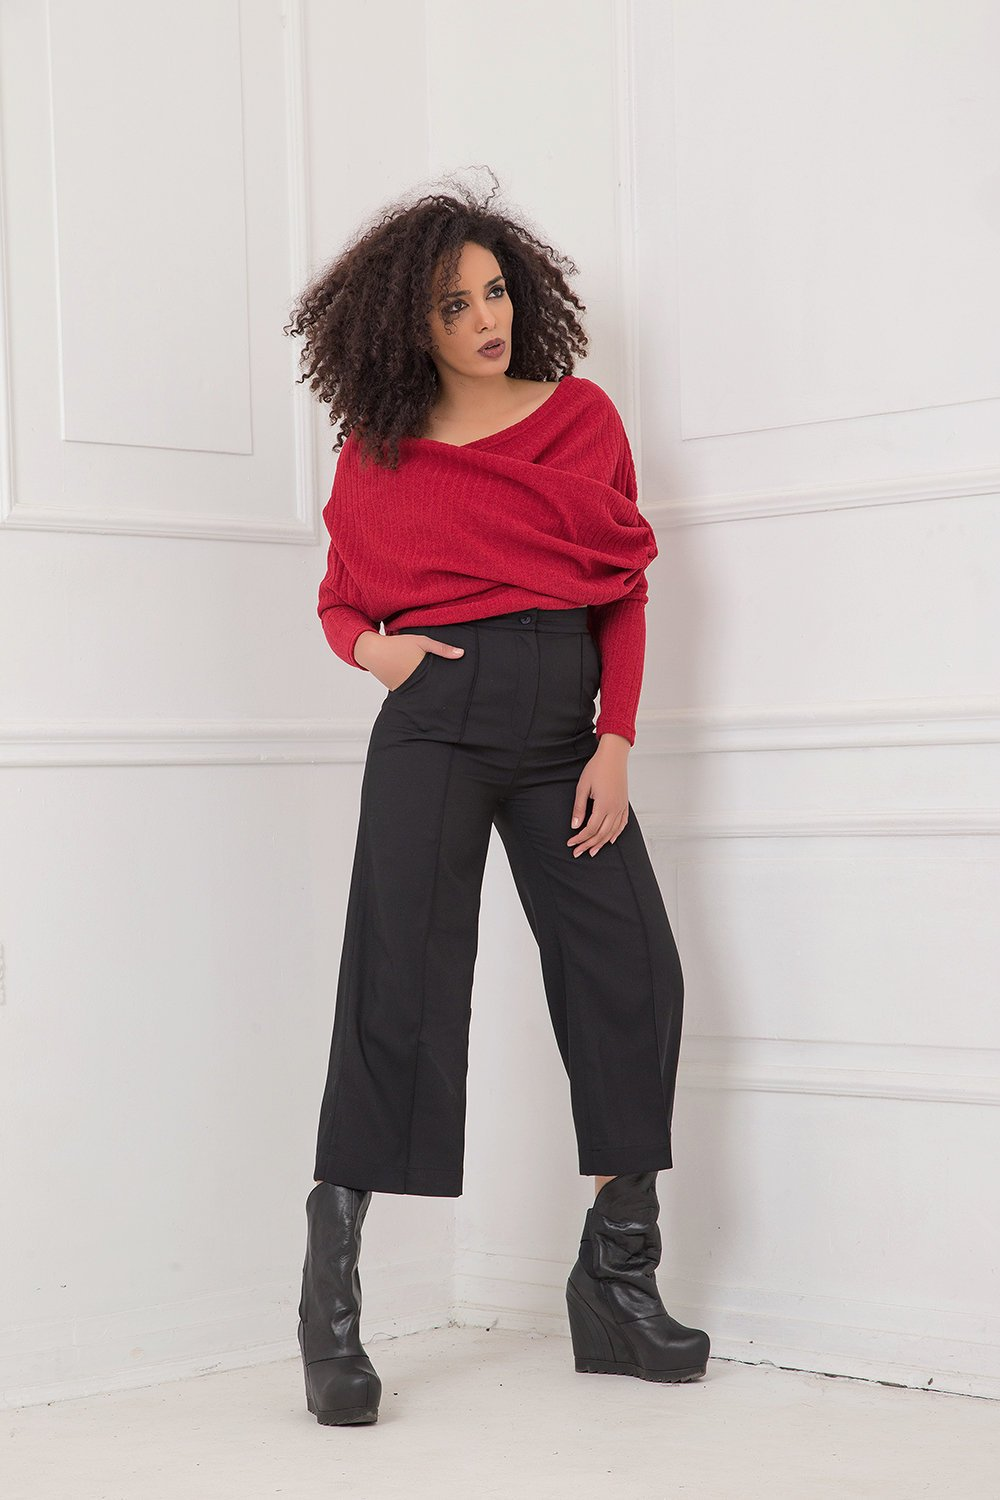 Black Pants, Wool Pants, Plus Size Clothing, High Waist Pants, Black Capri Pants, Wide Leg Pants, Straight Pants, Elegant Black Pants